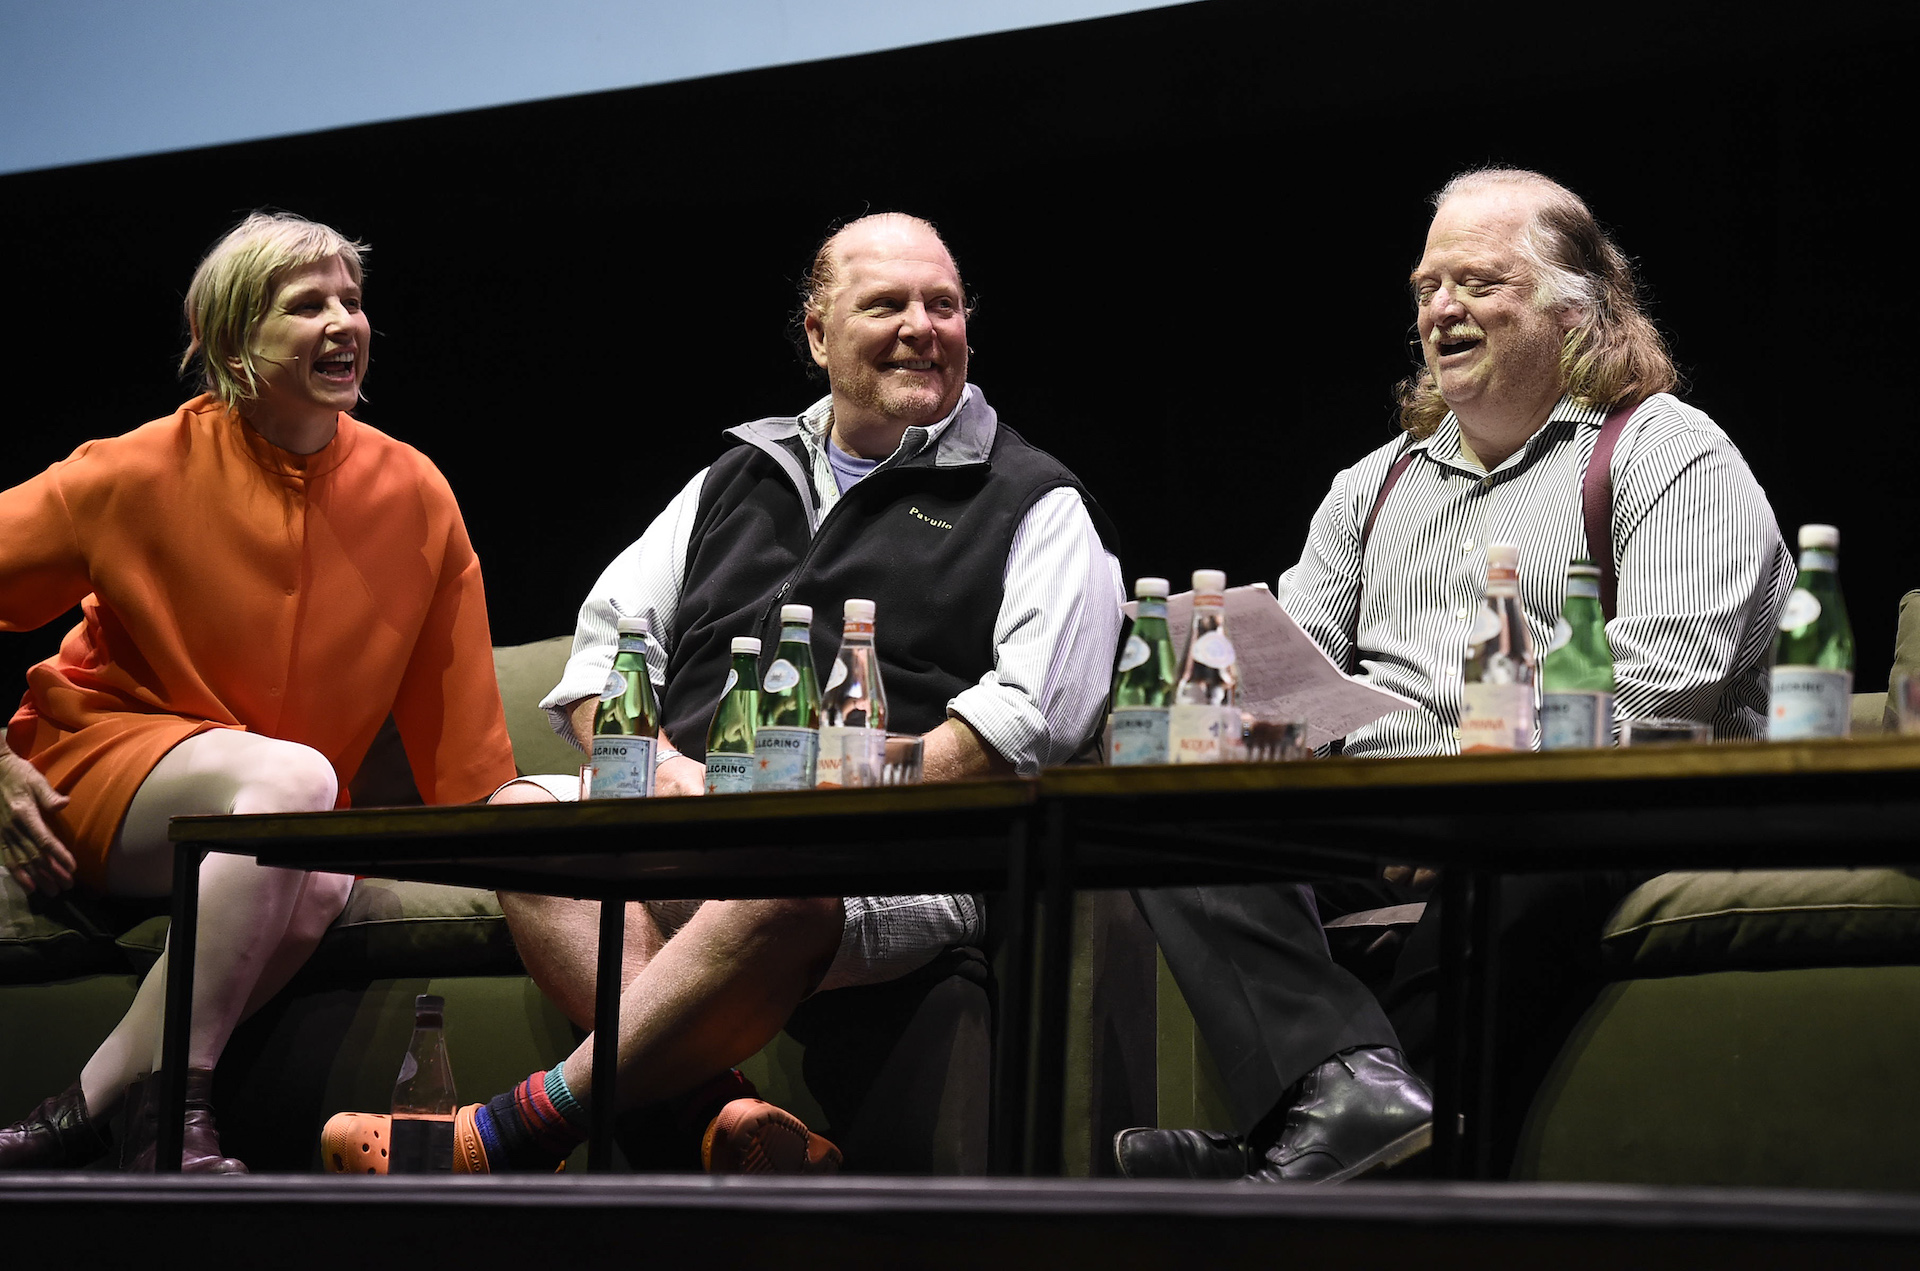 Chef Mary Sue Milliken (left) with Chef Mario Batali (middle) and LA Times critic Jonathan Gold (right) at the Food For Soul Panel. Photo courtesy of the LA Times and Dan Steinberg.